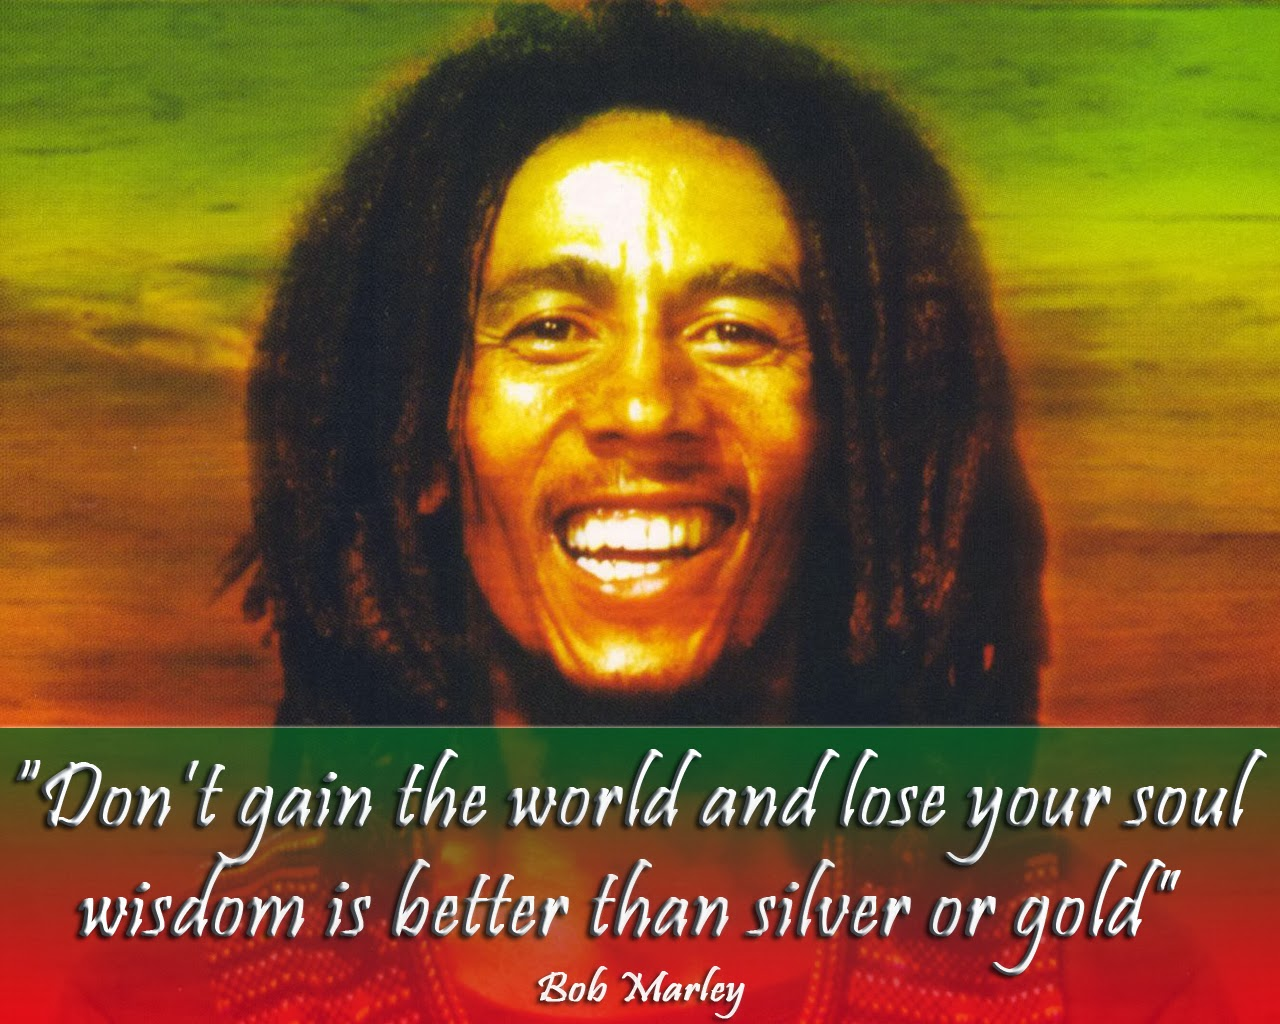 Gain-Quotes-Quote-Dont-gain-the-world-and-lose-your-soul.-Wisdom-is-better-than-silver-or-gold.-Bob-Marley